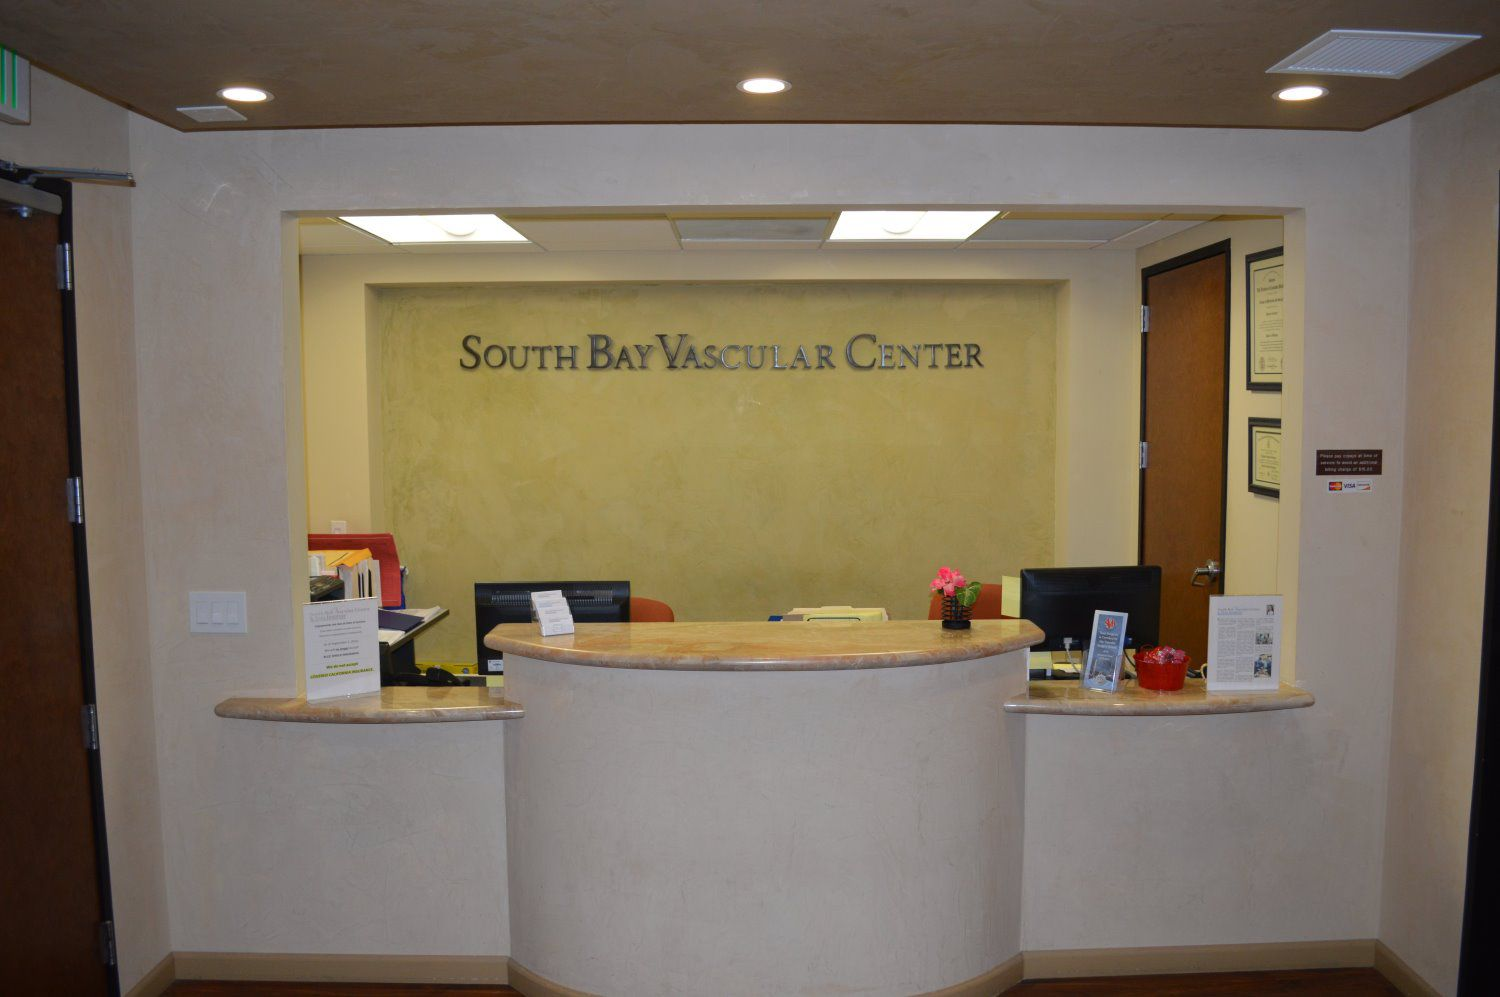 South Bay Vascular Front Desk